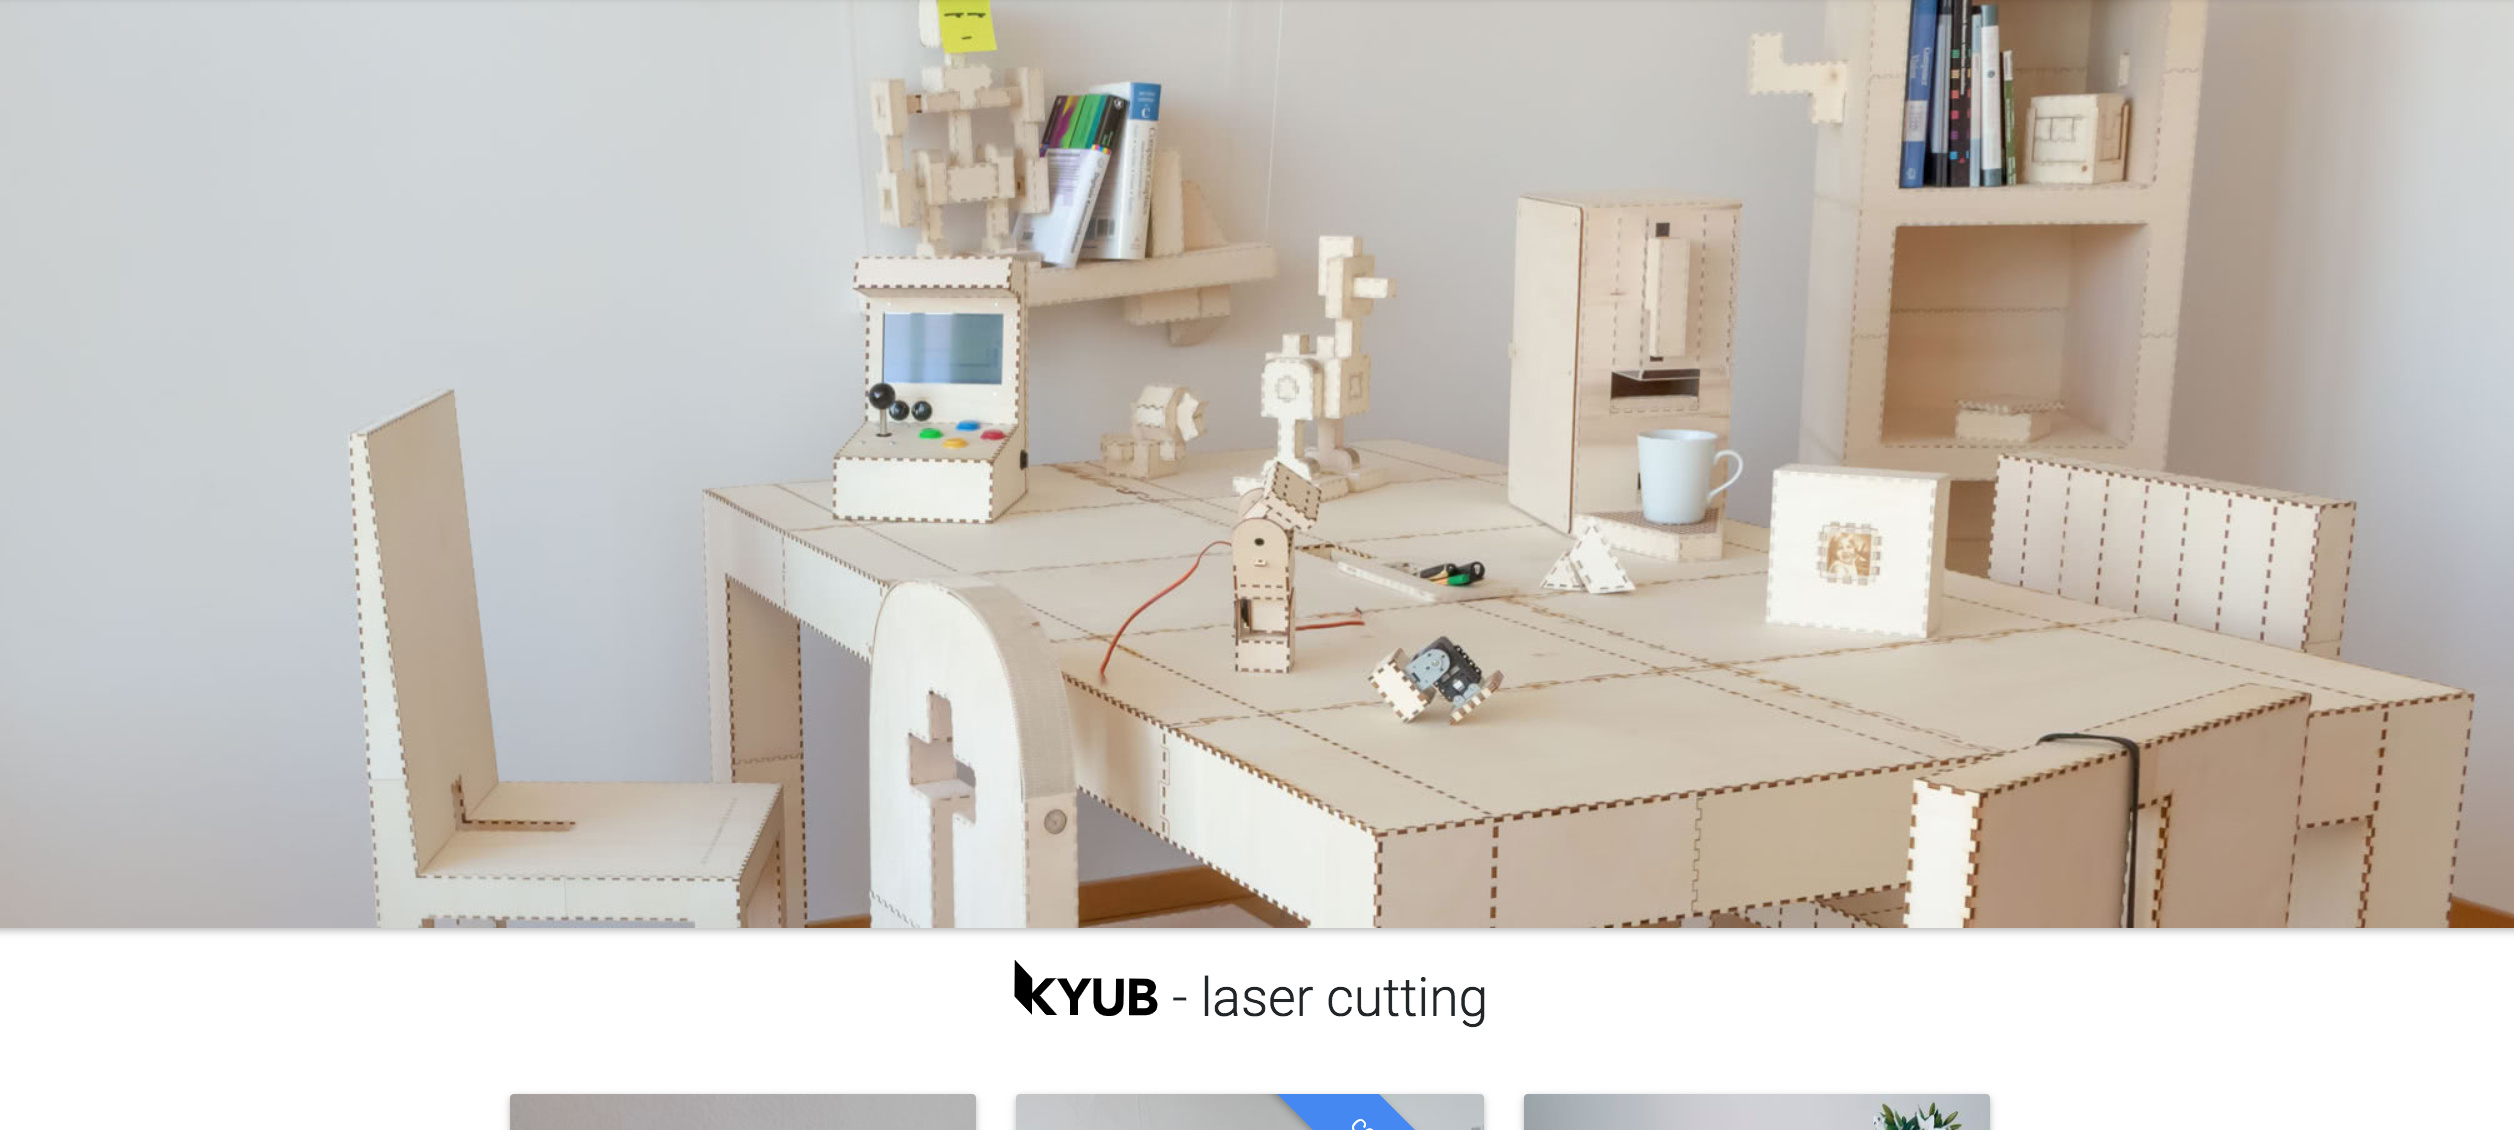 Trying out the new Laser Cutting software Kyub - Lasercutter